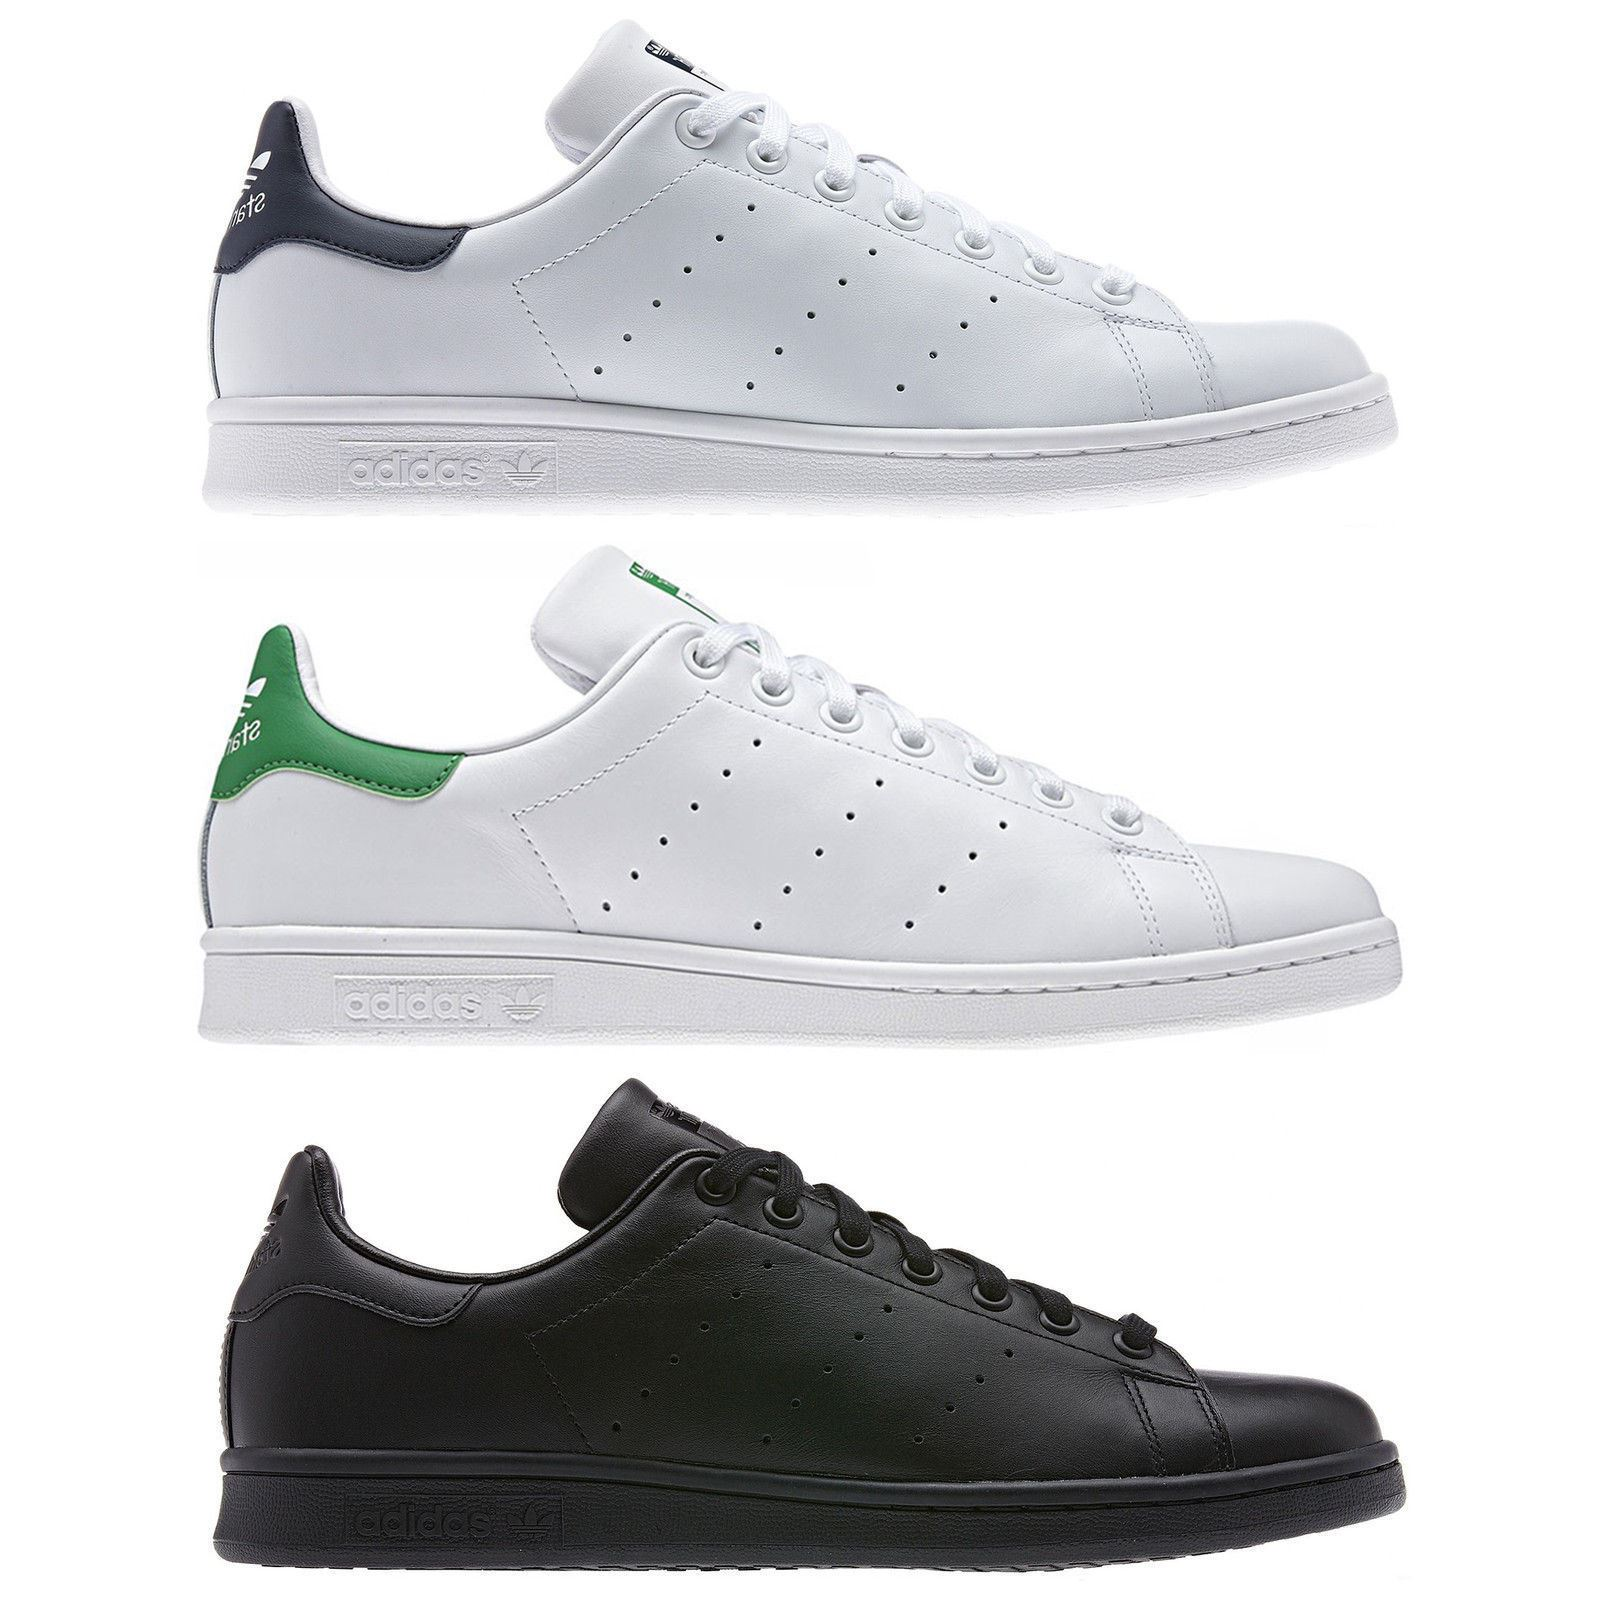 new style 7dbcd fccb7 Details about adidas ORIGINALS STAN SMITH TRAINERS NAVY GREEN BLACK WHITE  RETRO TENNIS SHOES